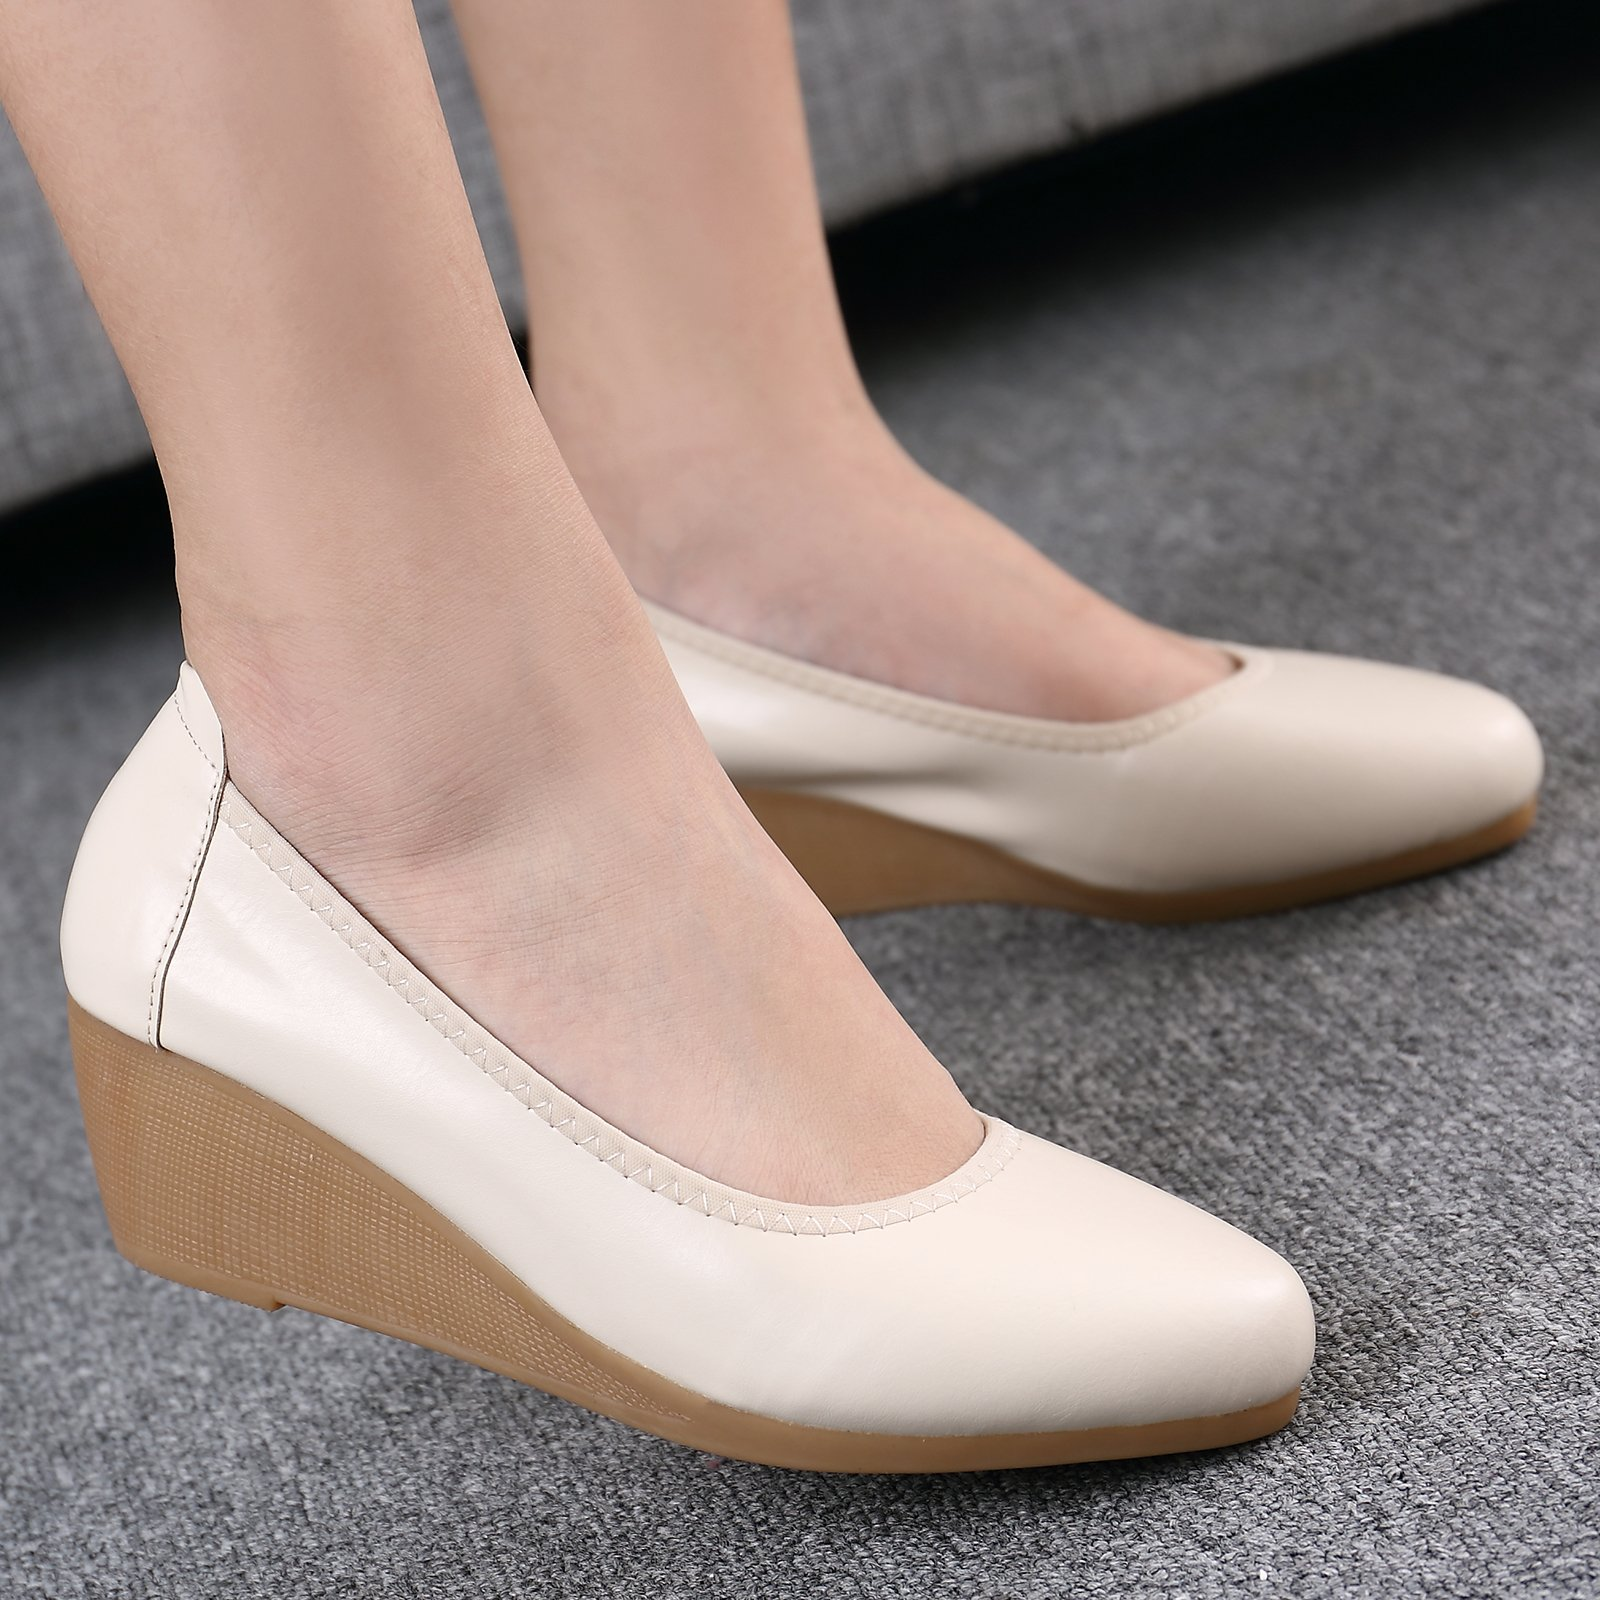 GAOLIM A Large Number Of Women Shoes Thick Black With Low And High-Heeled Shoes Air Hostesses Etiquette Interview Overalls Flat Bottom Single Shoes Female,42, M White 5Cm